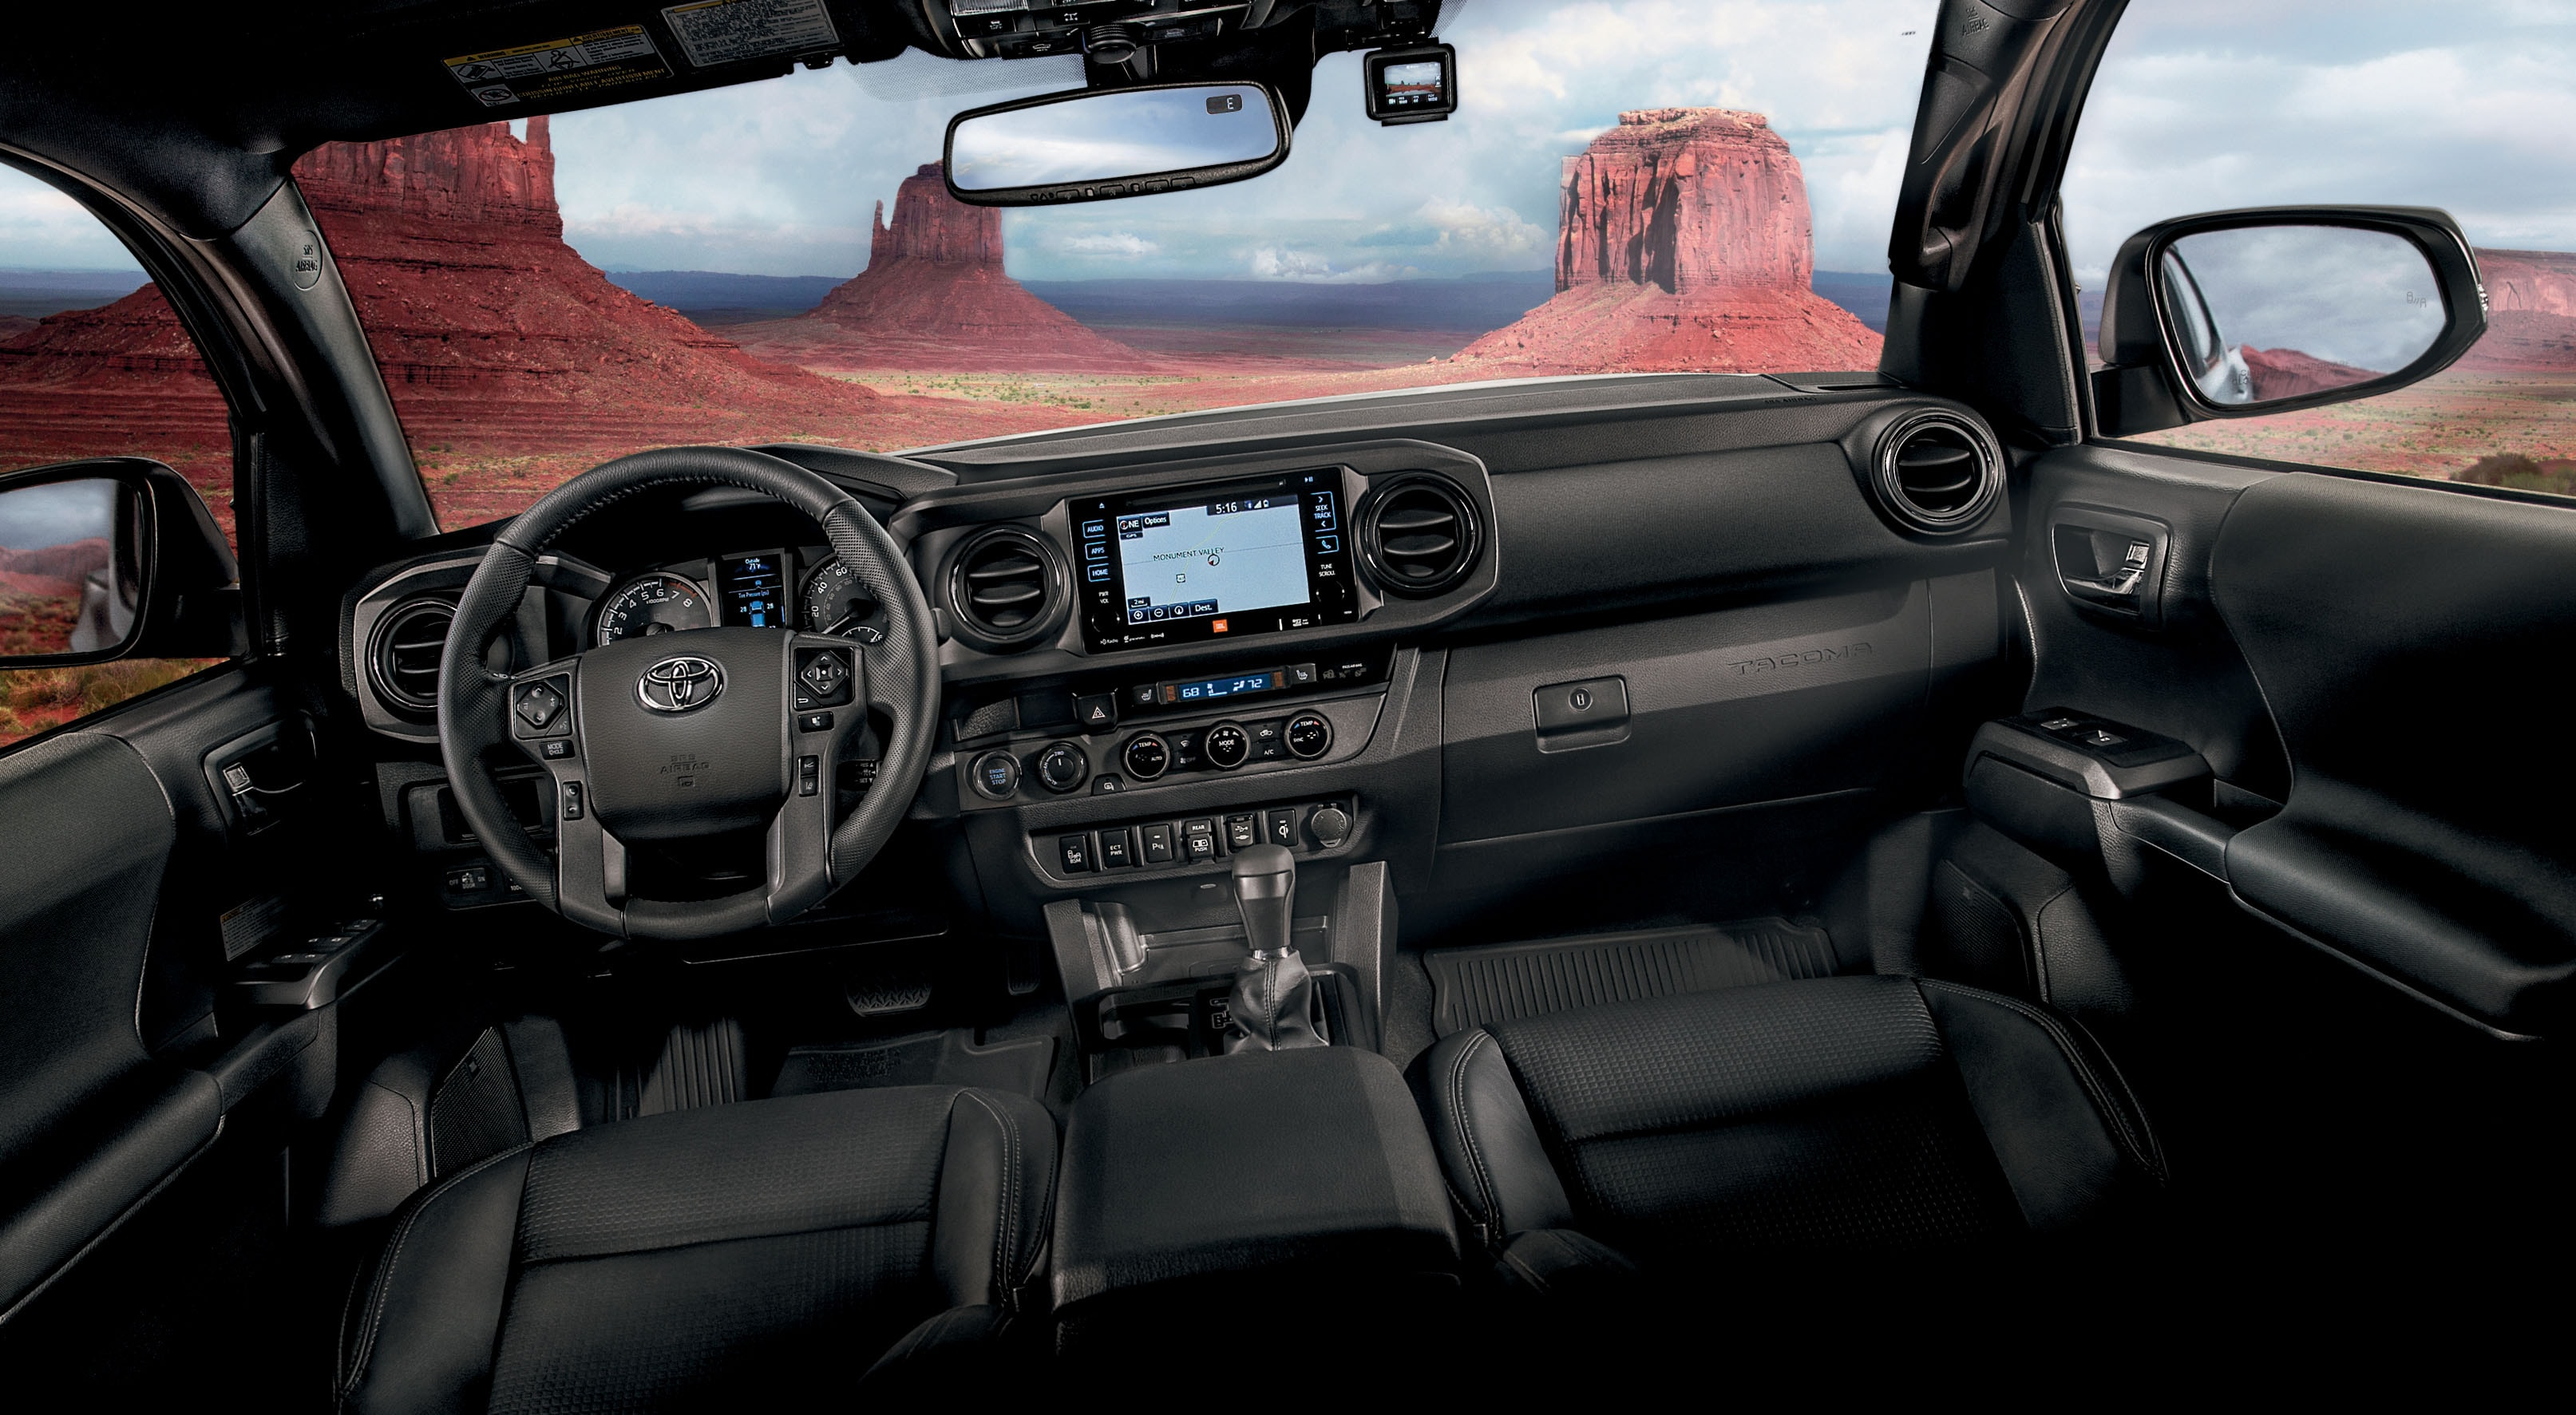 Interior view of the front seat of a 2018 Tacoma